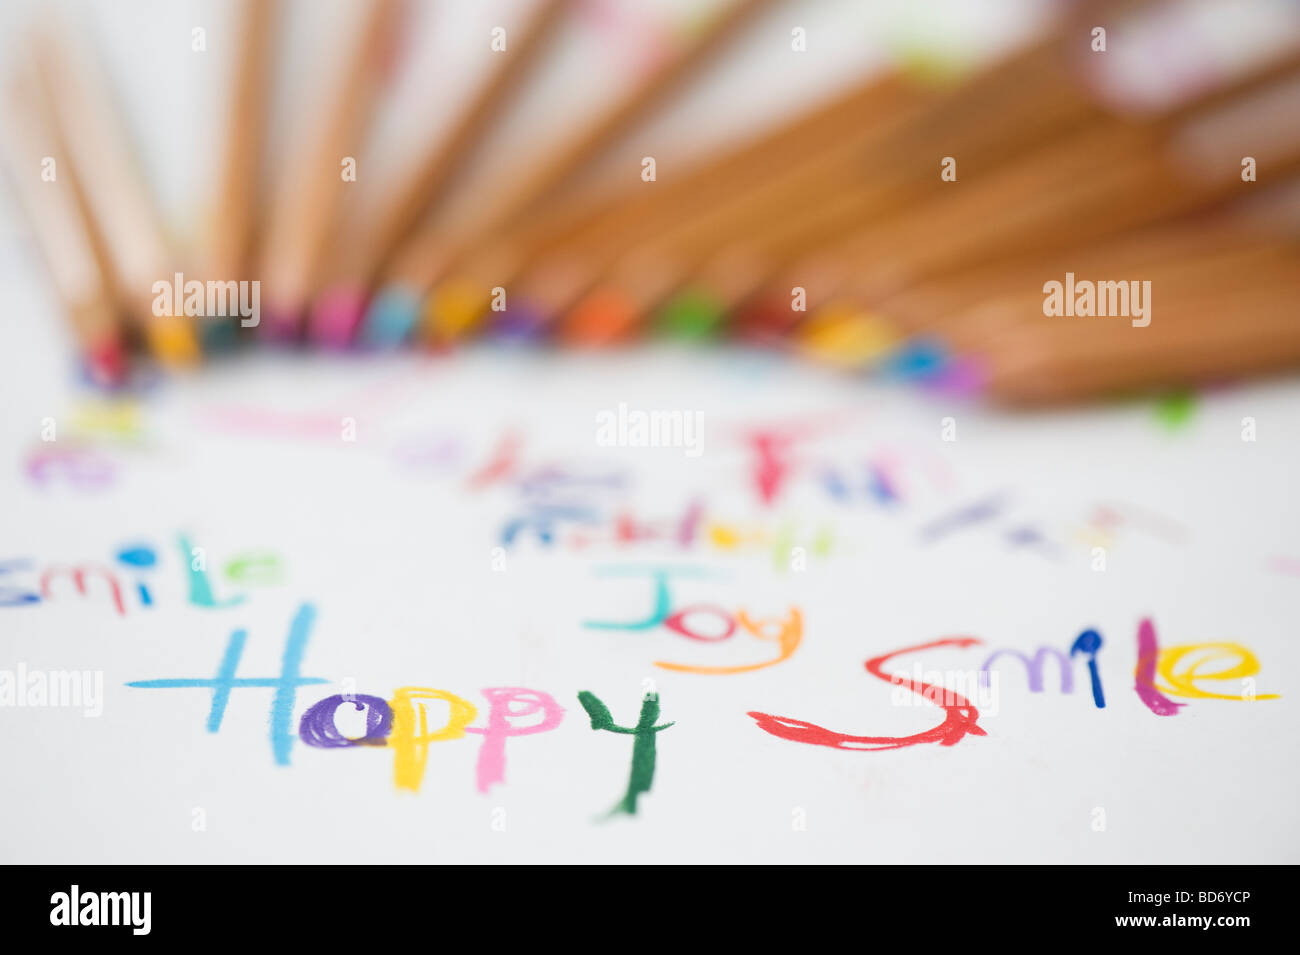 Coloured smile, happy, joy, fun words on paper with colouring pencils - Stock Image